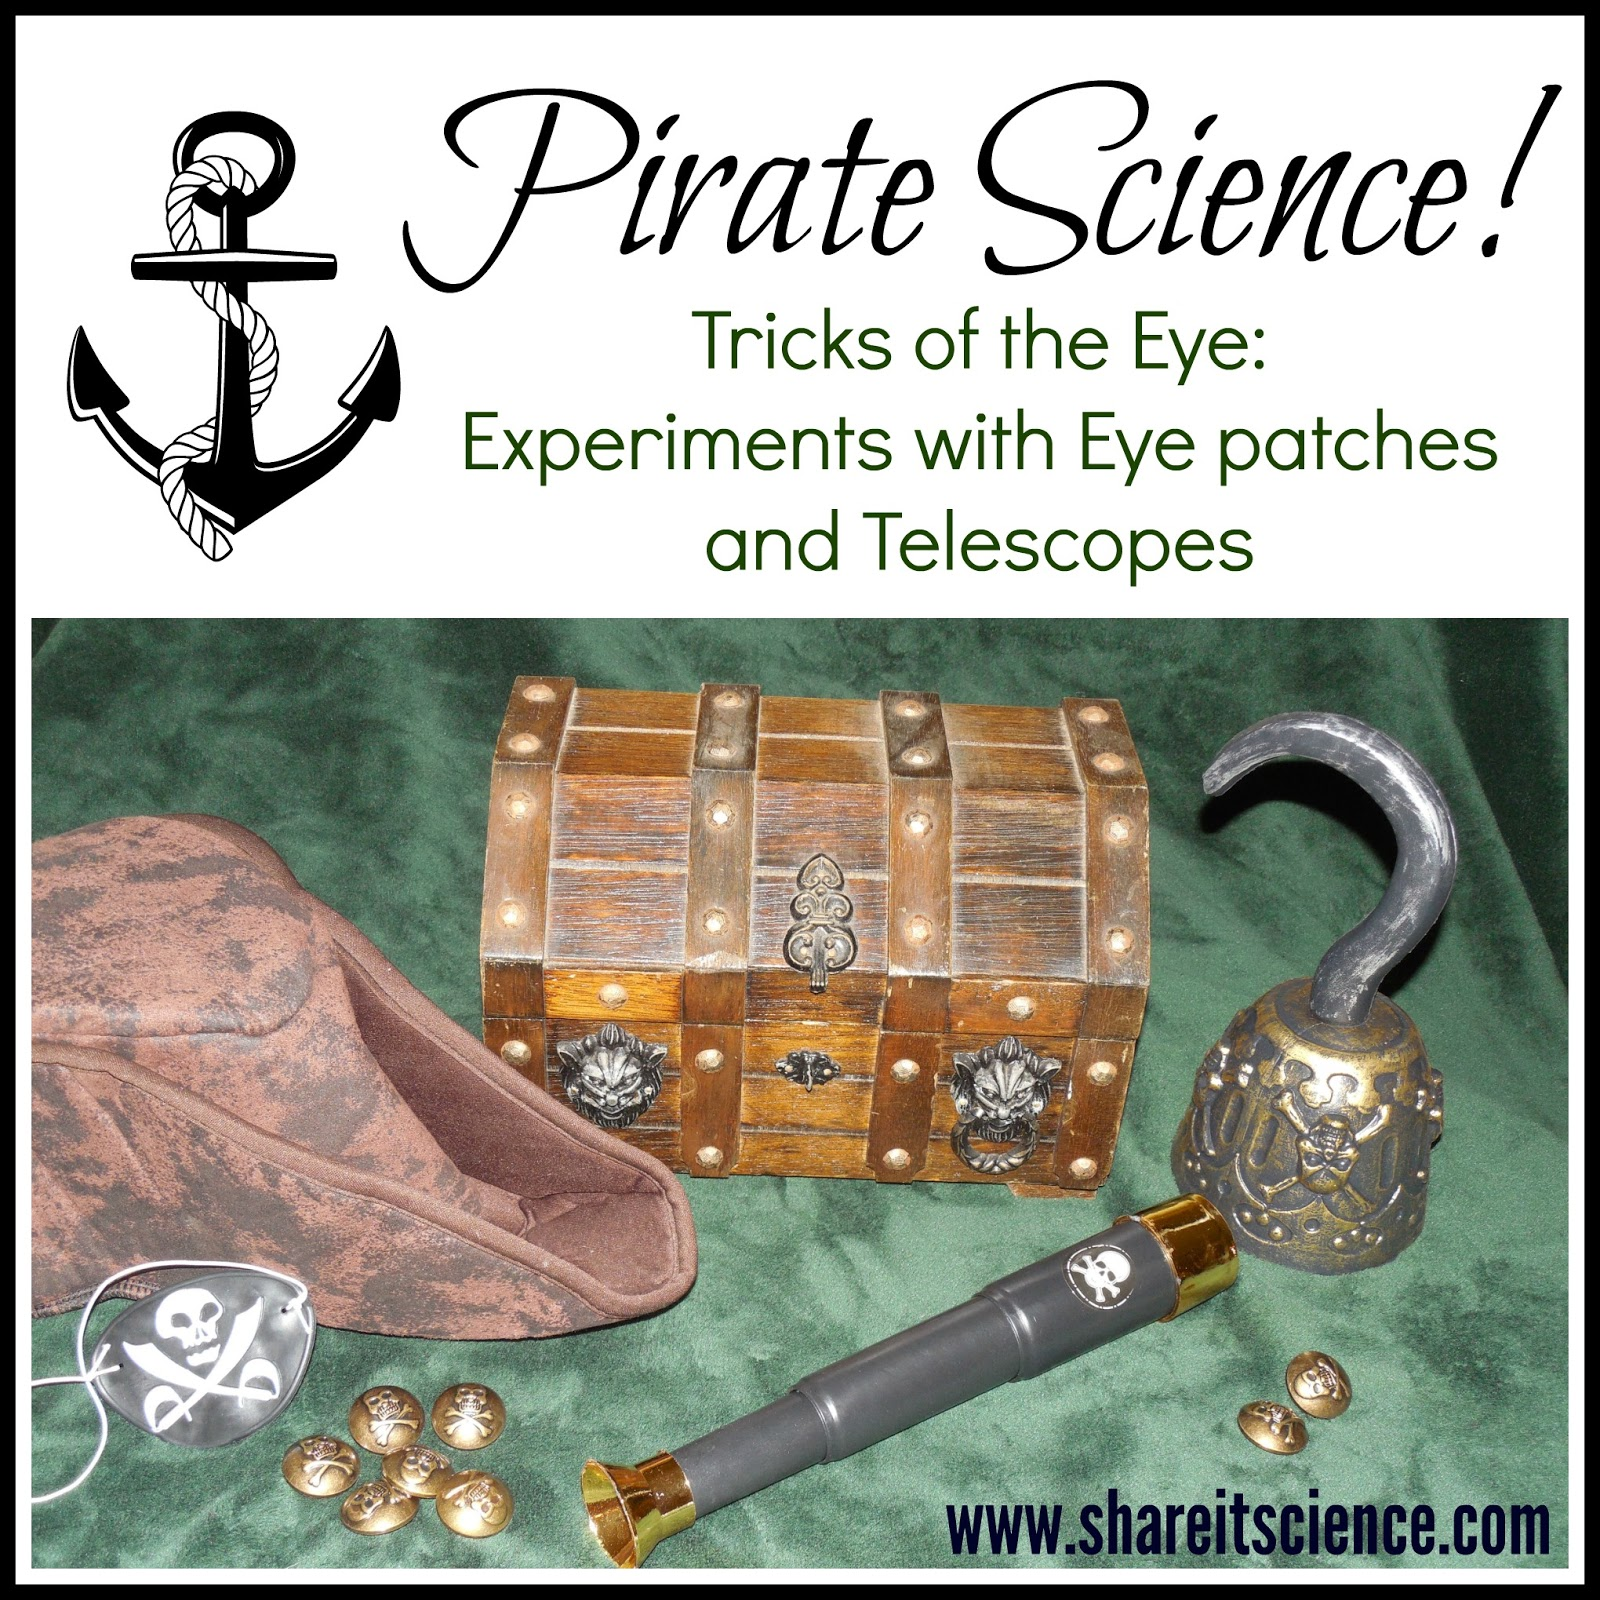 Share it! Science : Pirate Science: Tricks of the Eye